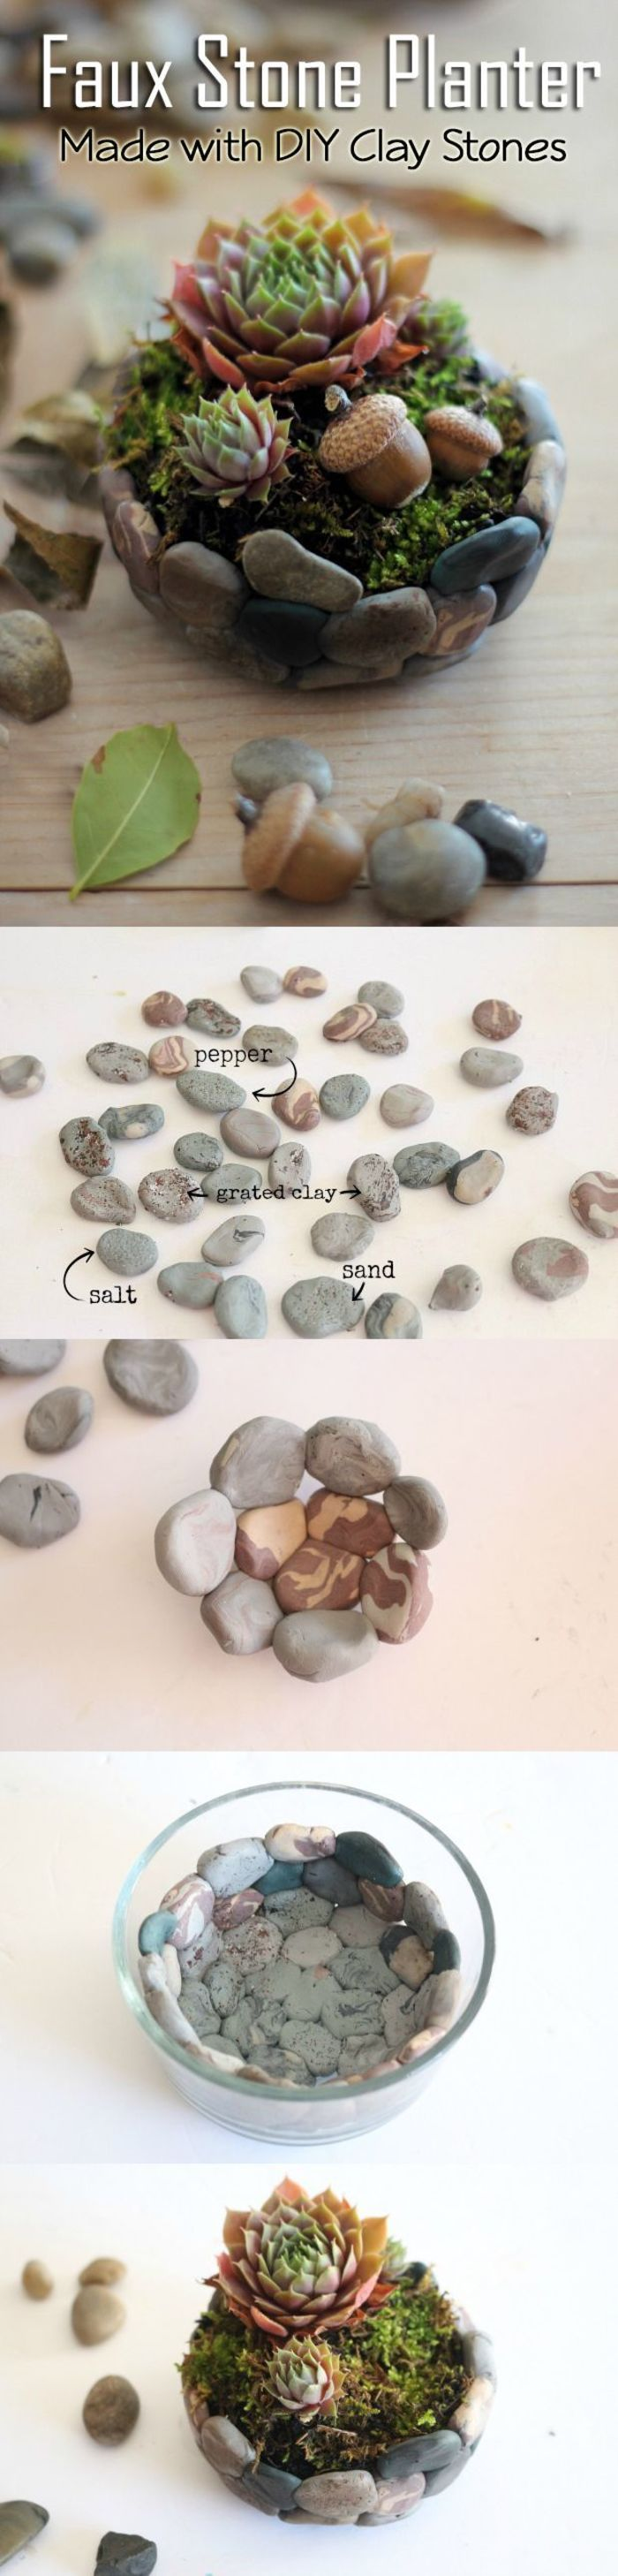 Clay succulents succulents pinterest diy stone planters and ideas